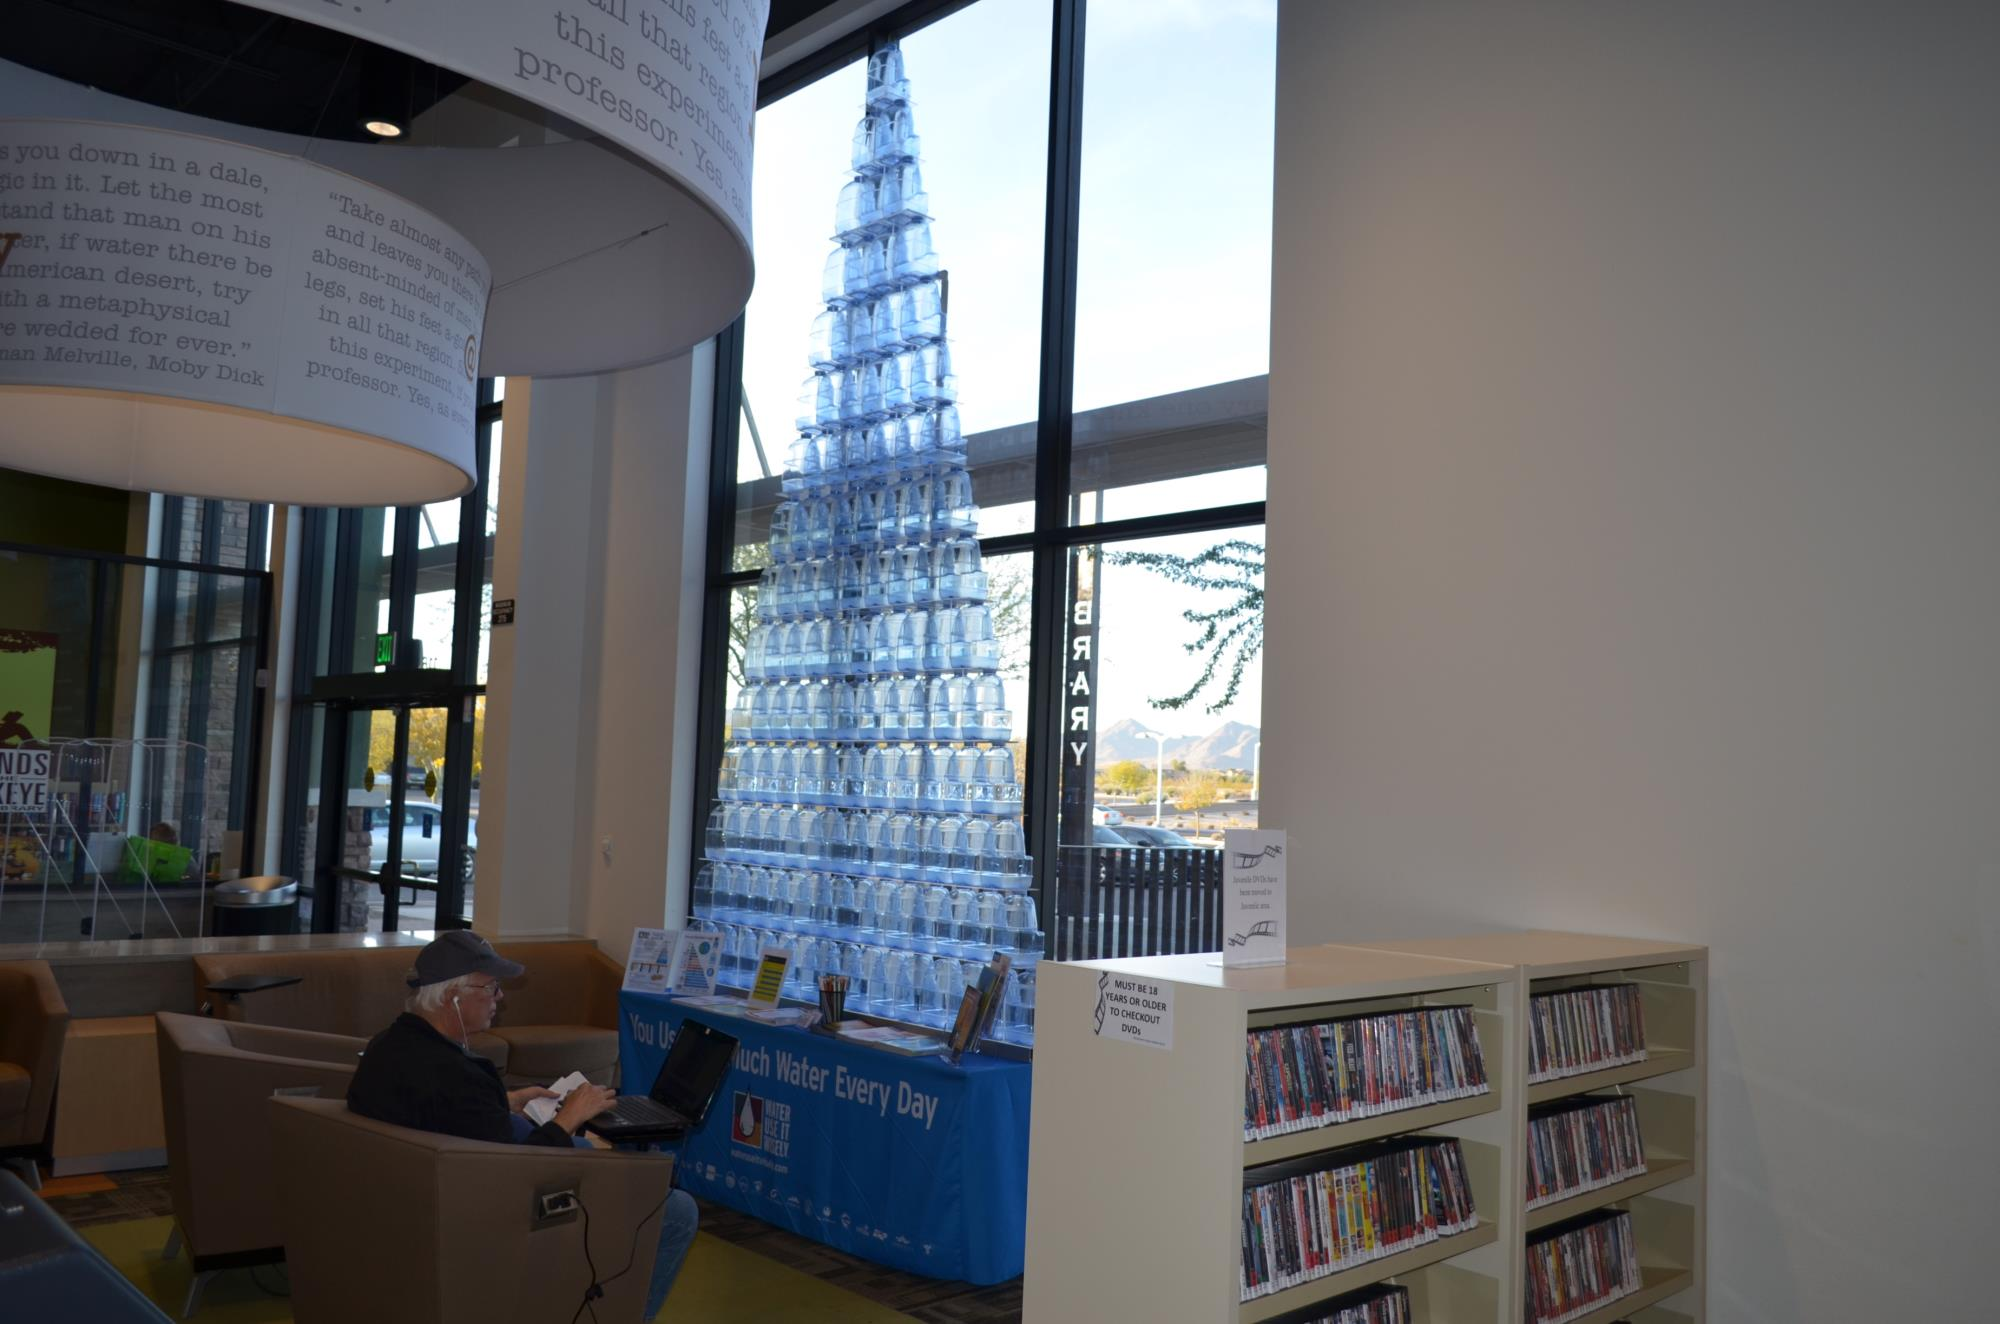 Impressive water tower display returns to Coyote Library